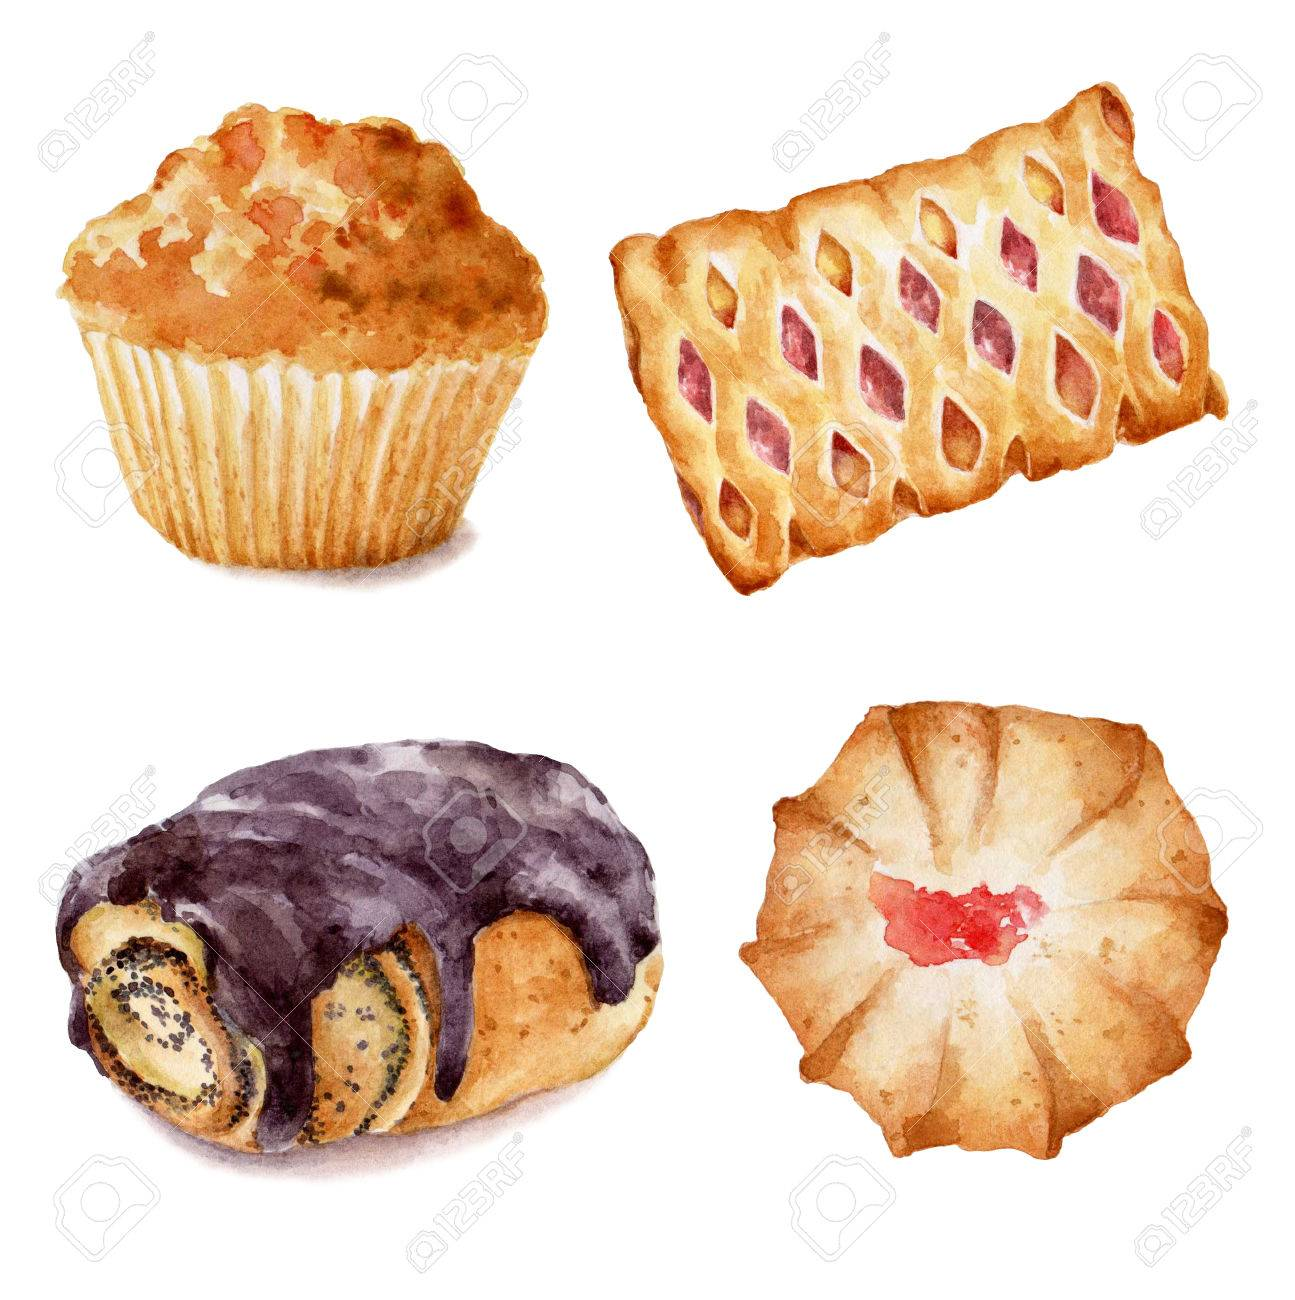 Set of watercolor cupcakes hand drawn illustration on white background. It can be used for card, postcard, cover, invitation, birthday card. - 67644058